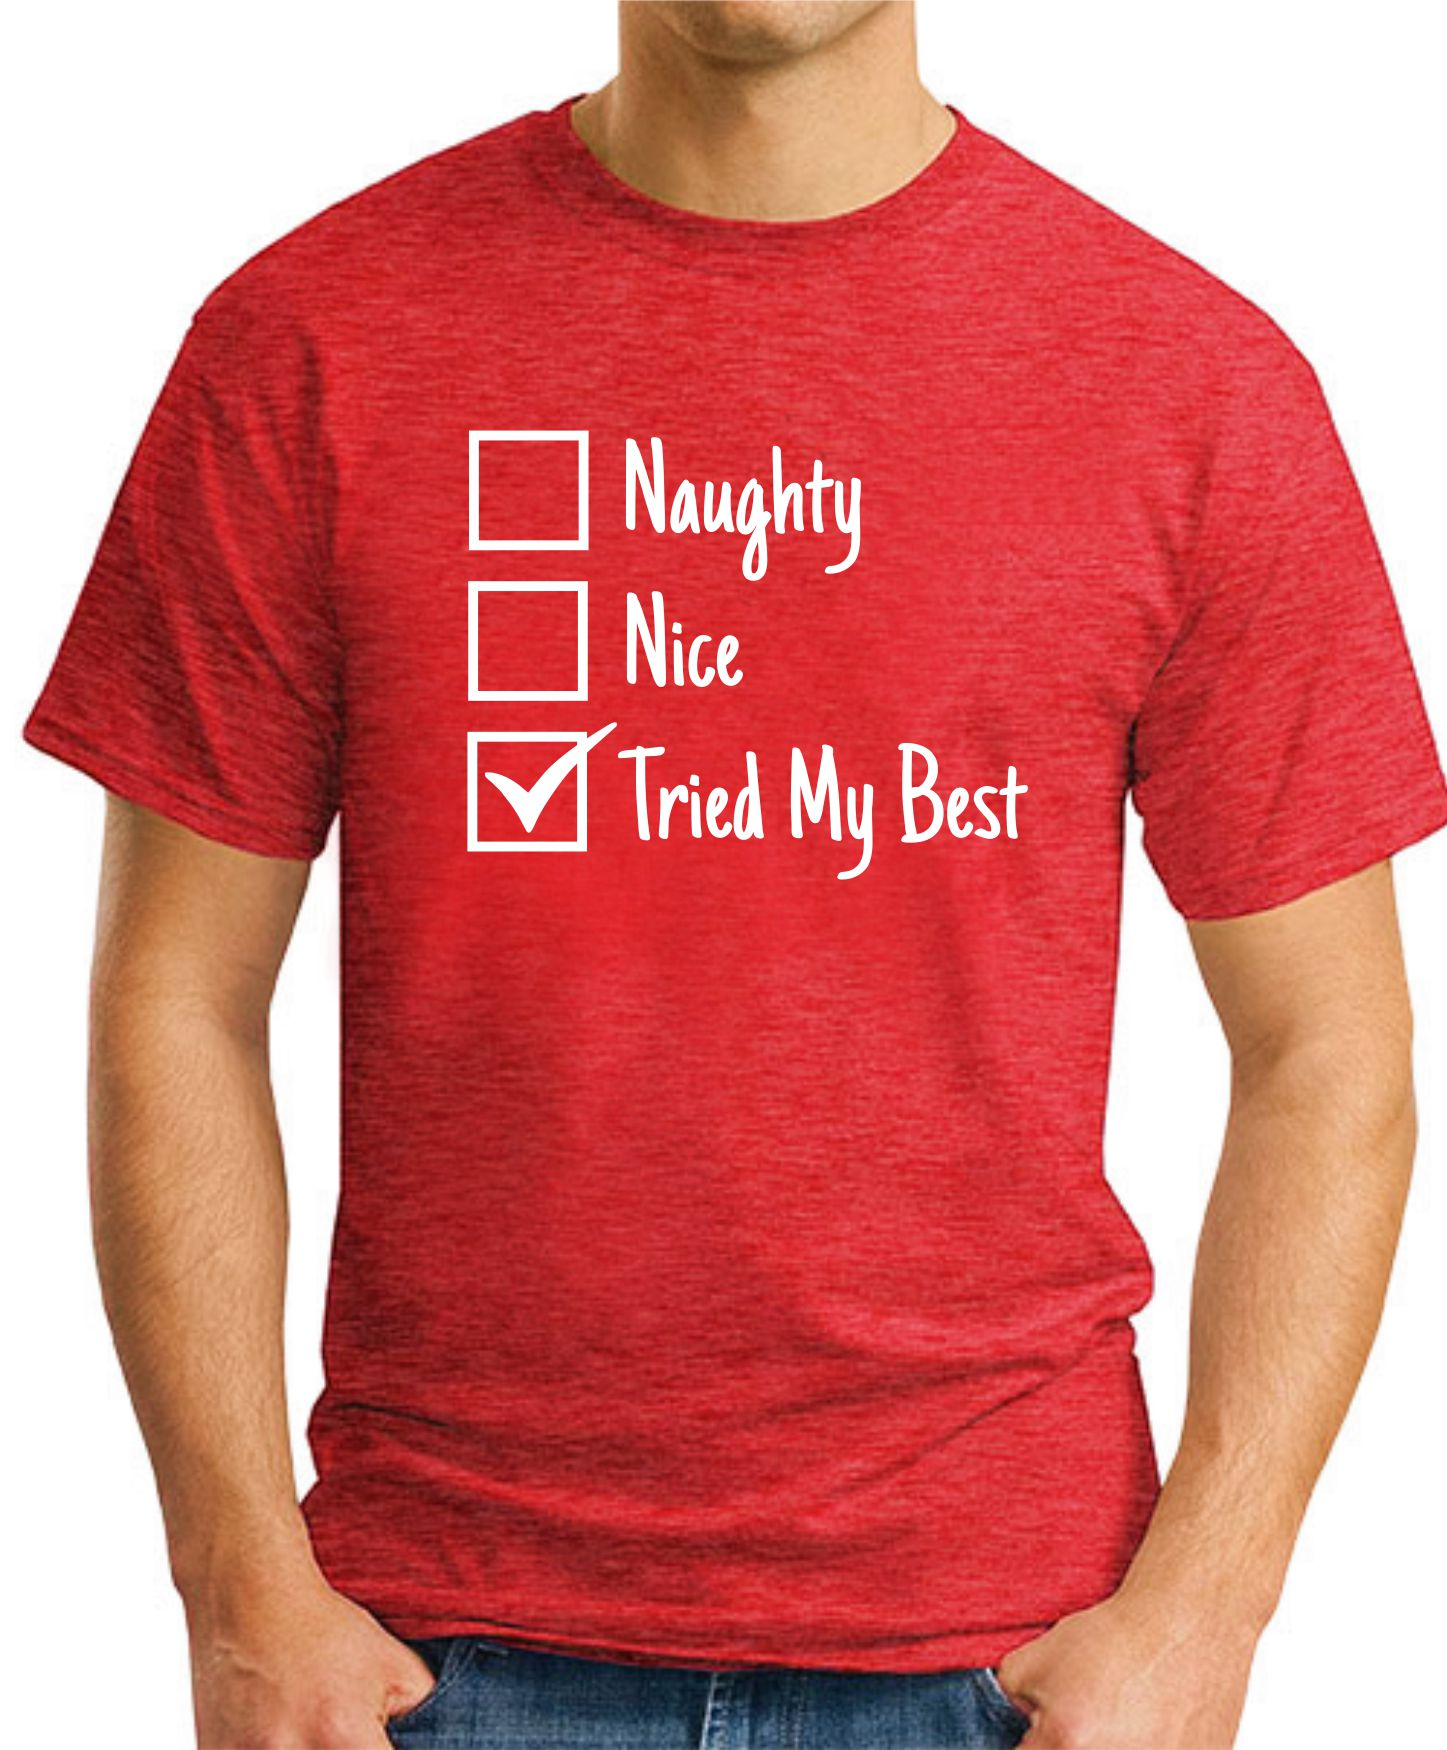 Naughty Nice Tried My Best red